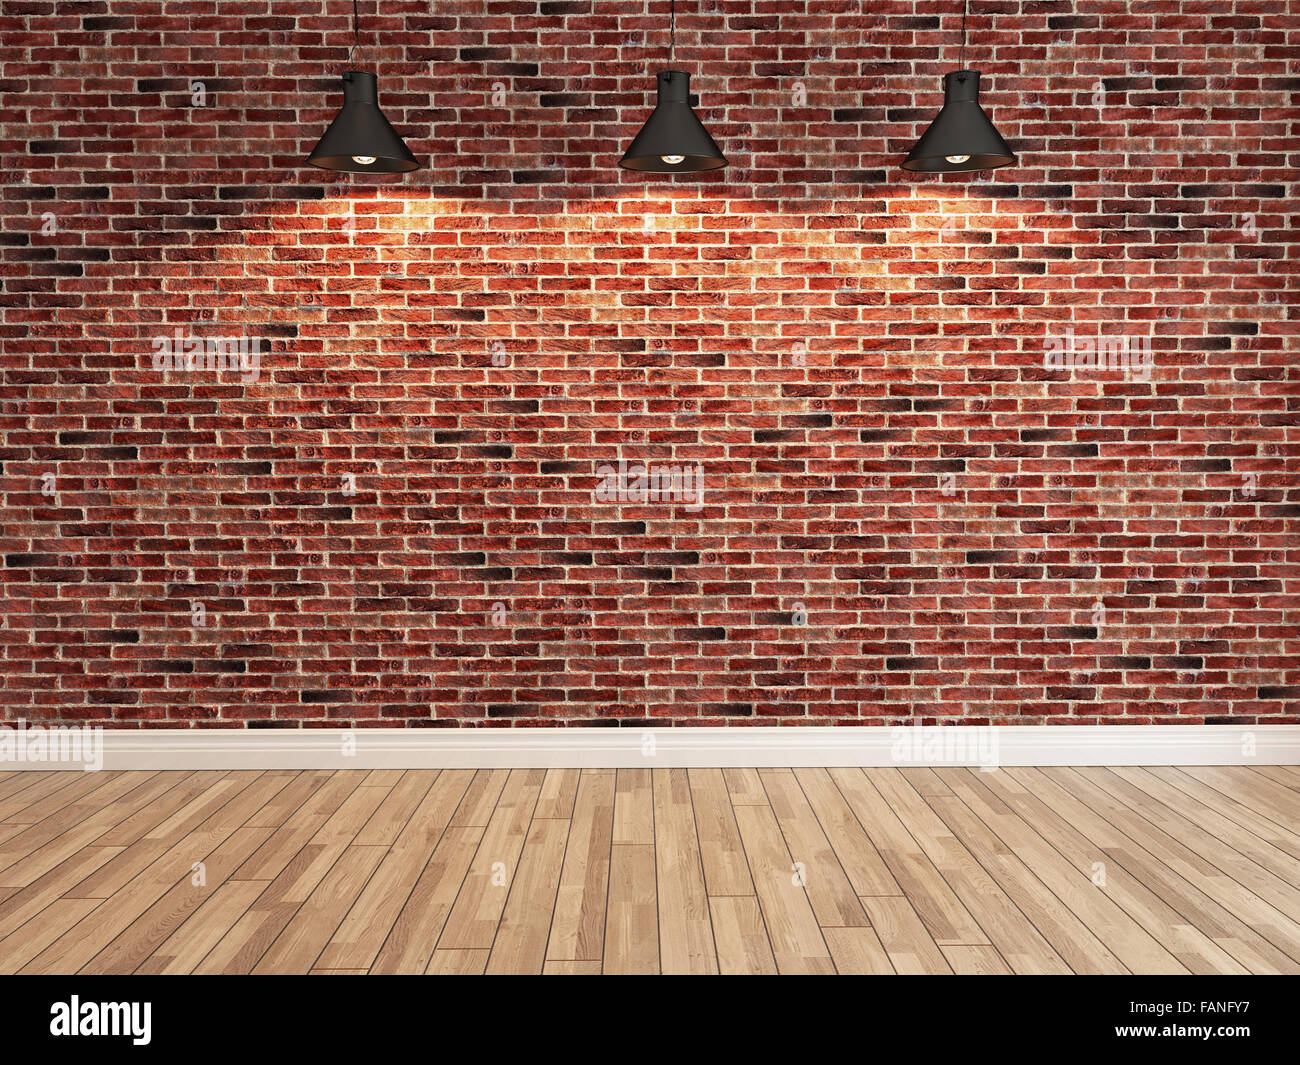 Interior Red Brick Wall Decoration Under Three Light Interior Wall Stock Photo Royalty Free